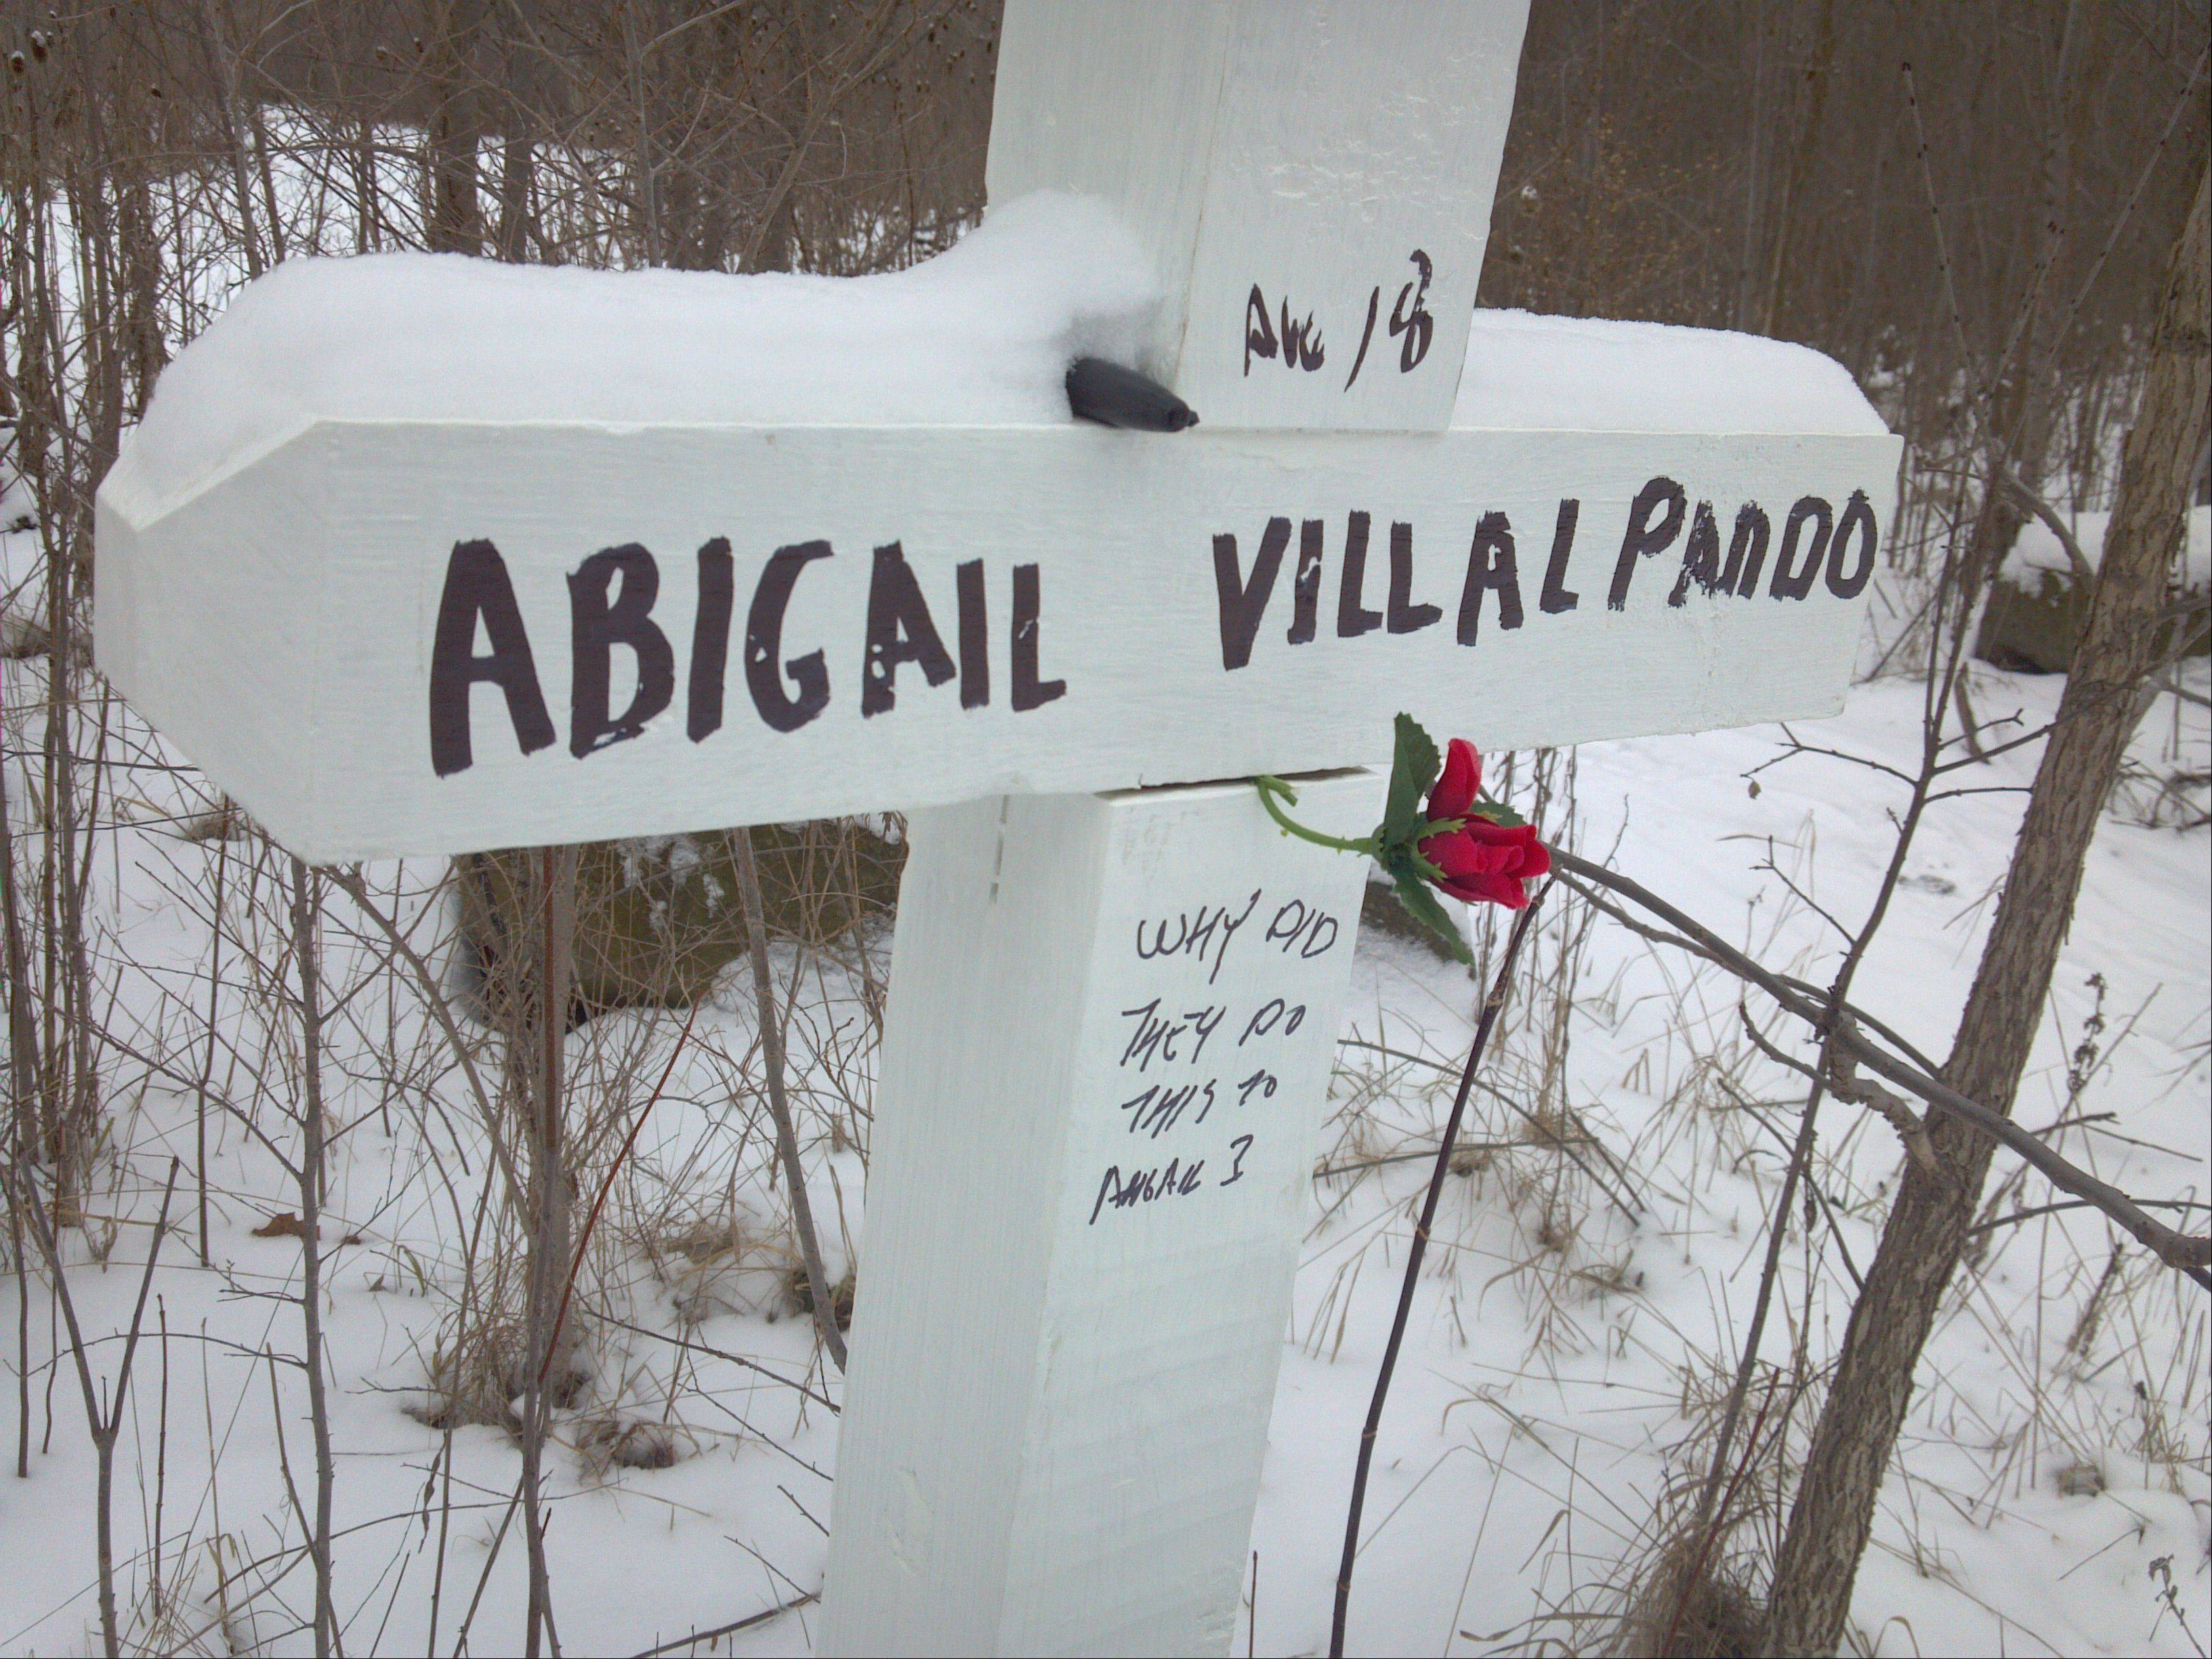 A white cross in memory of Abigail Villalpando was placed near Fifth Street and Wabansia Avenue in Montgomery, near where her burned remains were found by sheriff's deputies. Three men have been charged in connection with her murder, which was the first homicide in Aurora since late 2011.